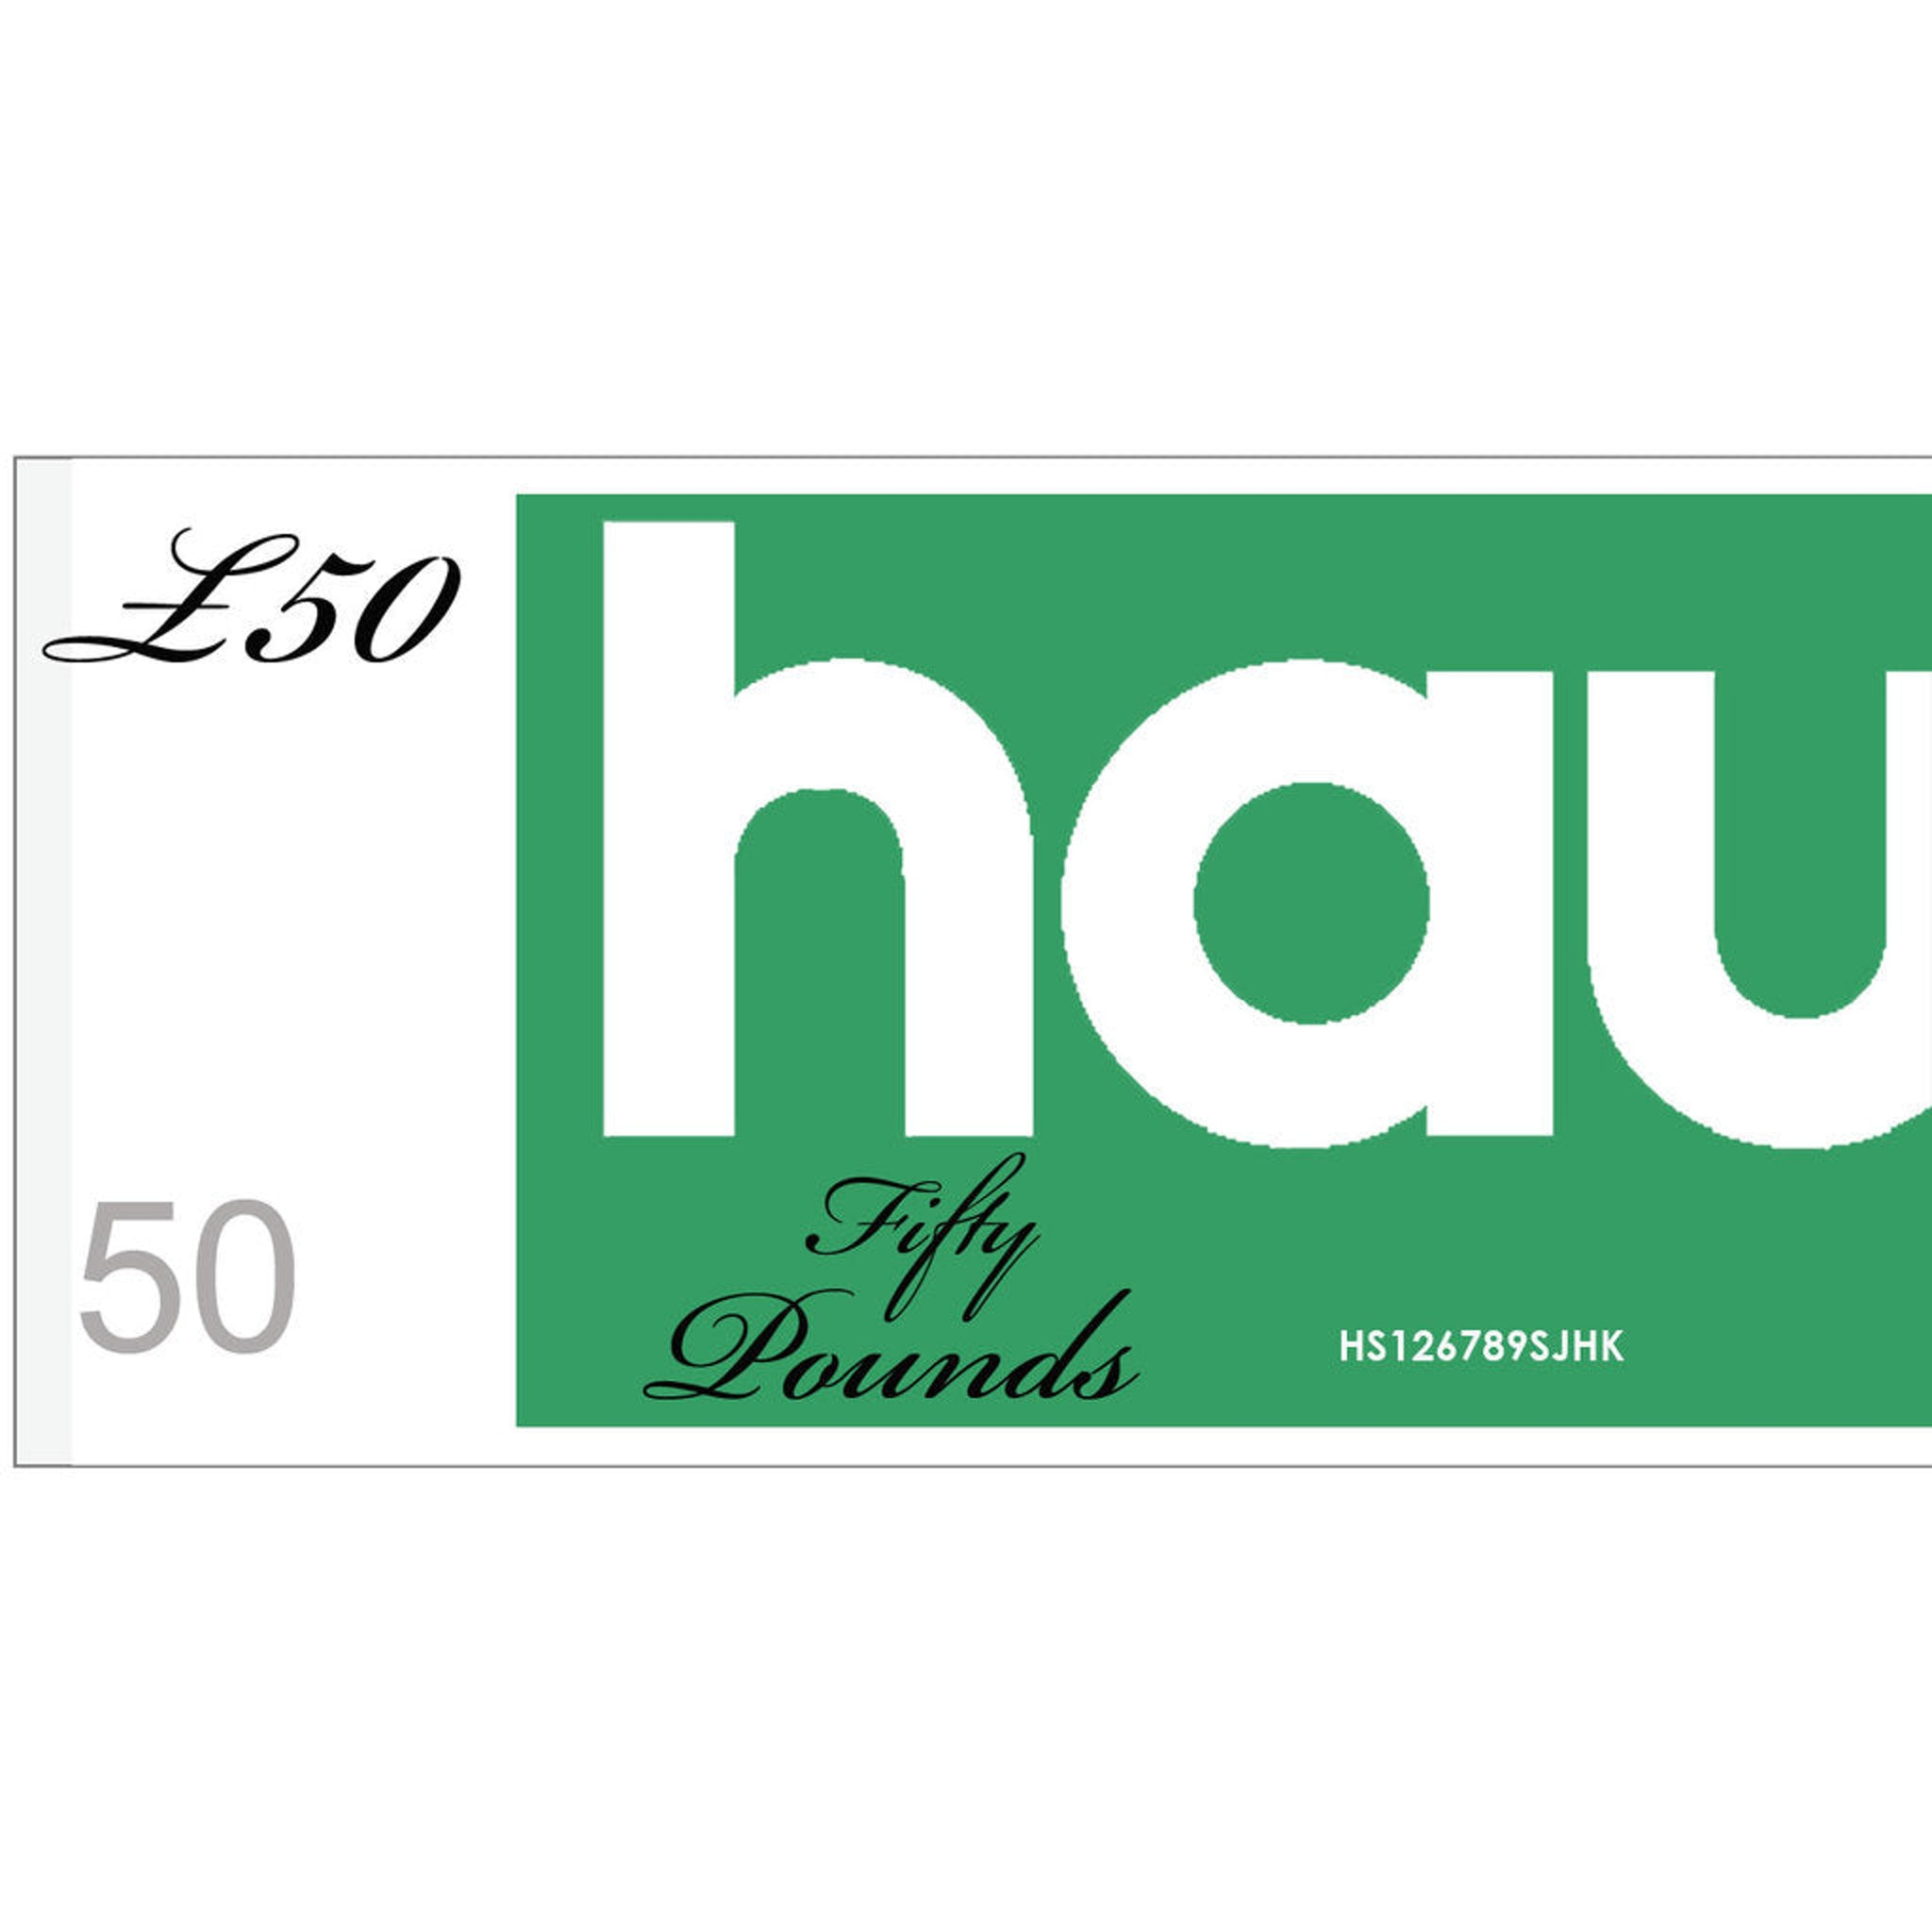 HAUS GIFT VOUCHER - VALUE £50 - for Christopher and Stephen